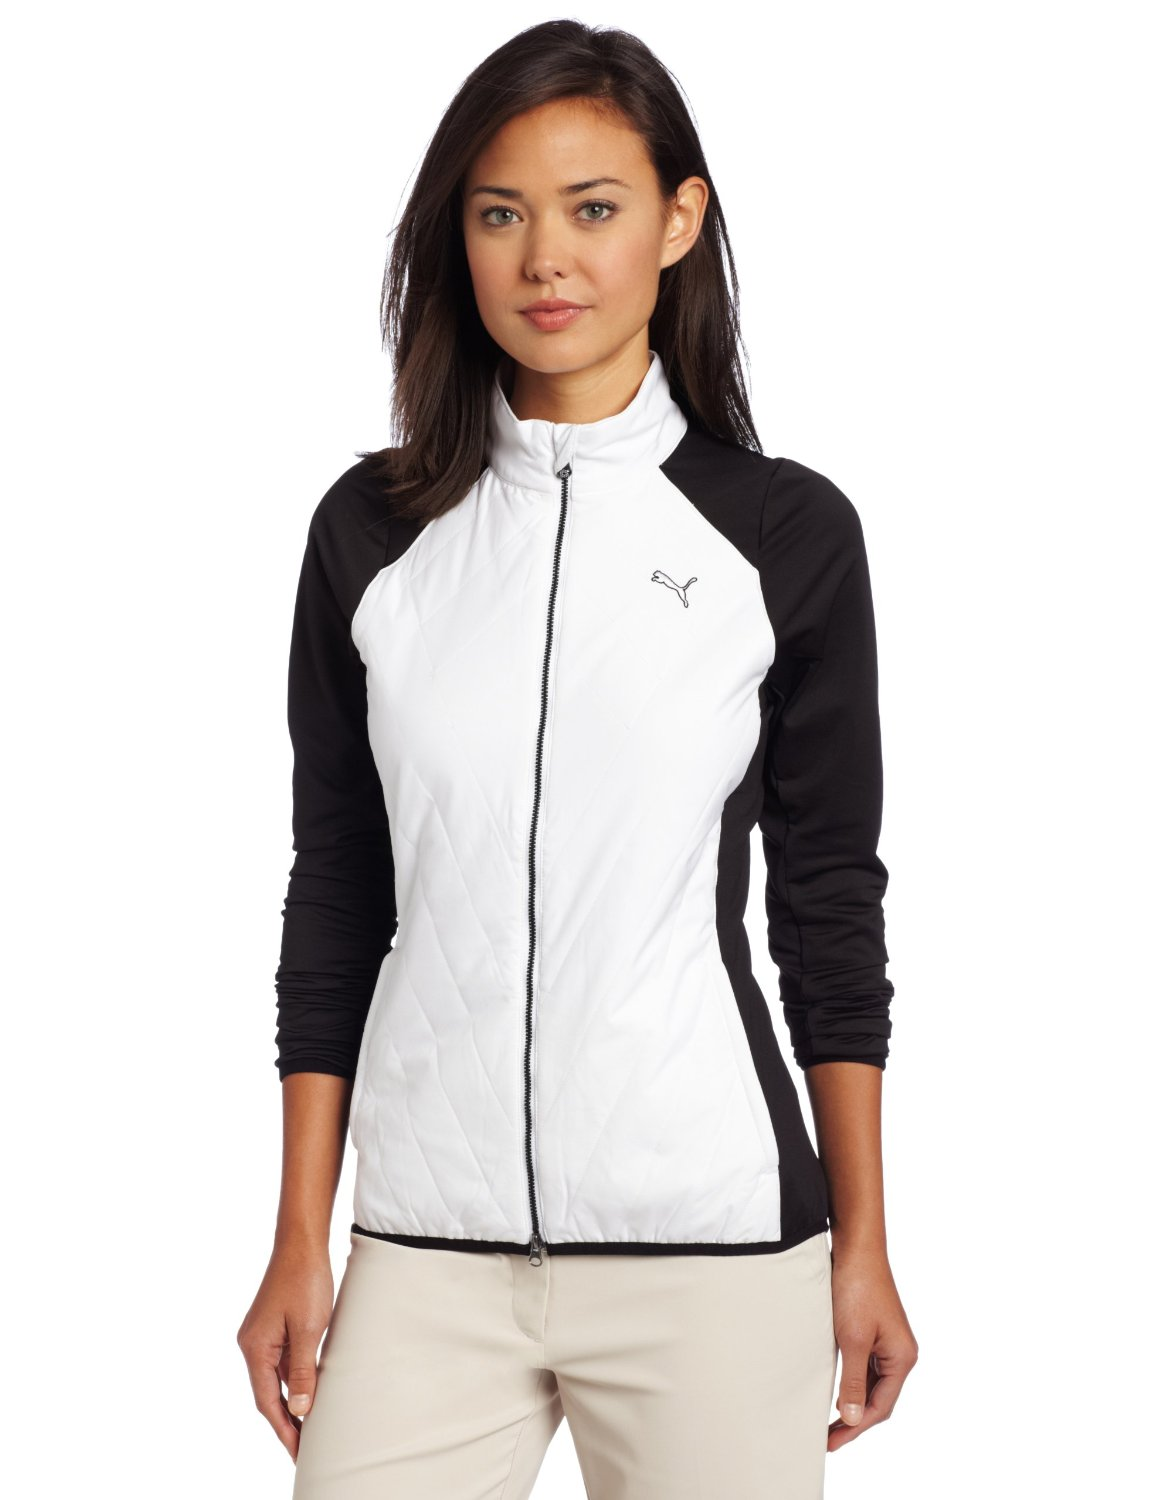 Puma Womens Versa Cat Golf Jackets 6c68d02b3e